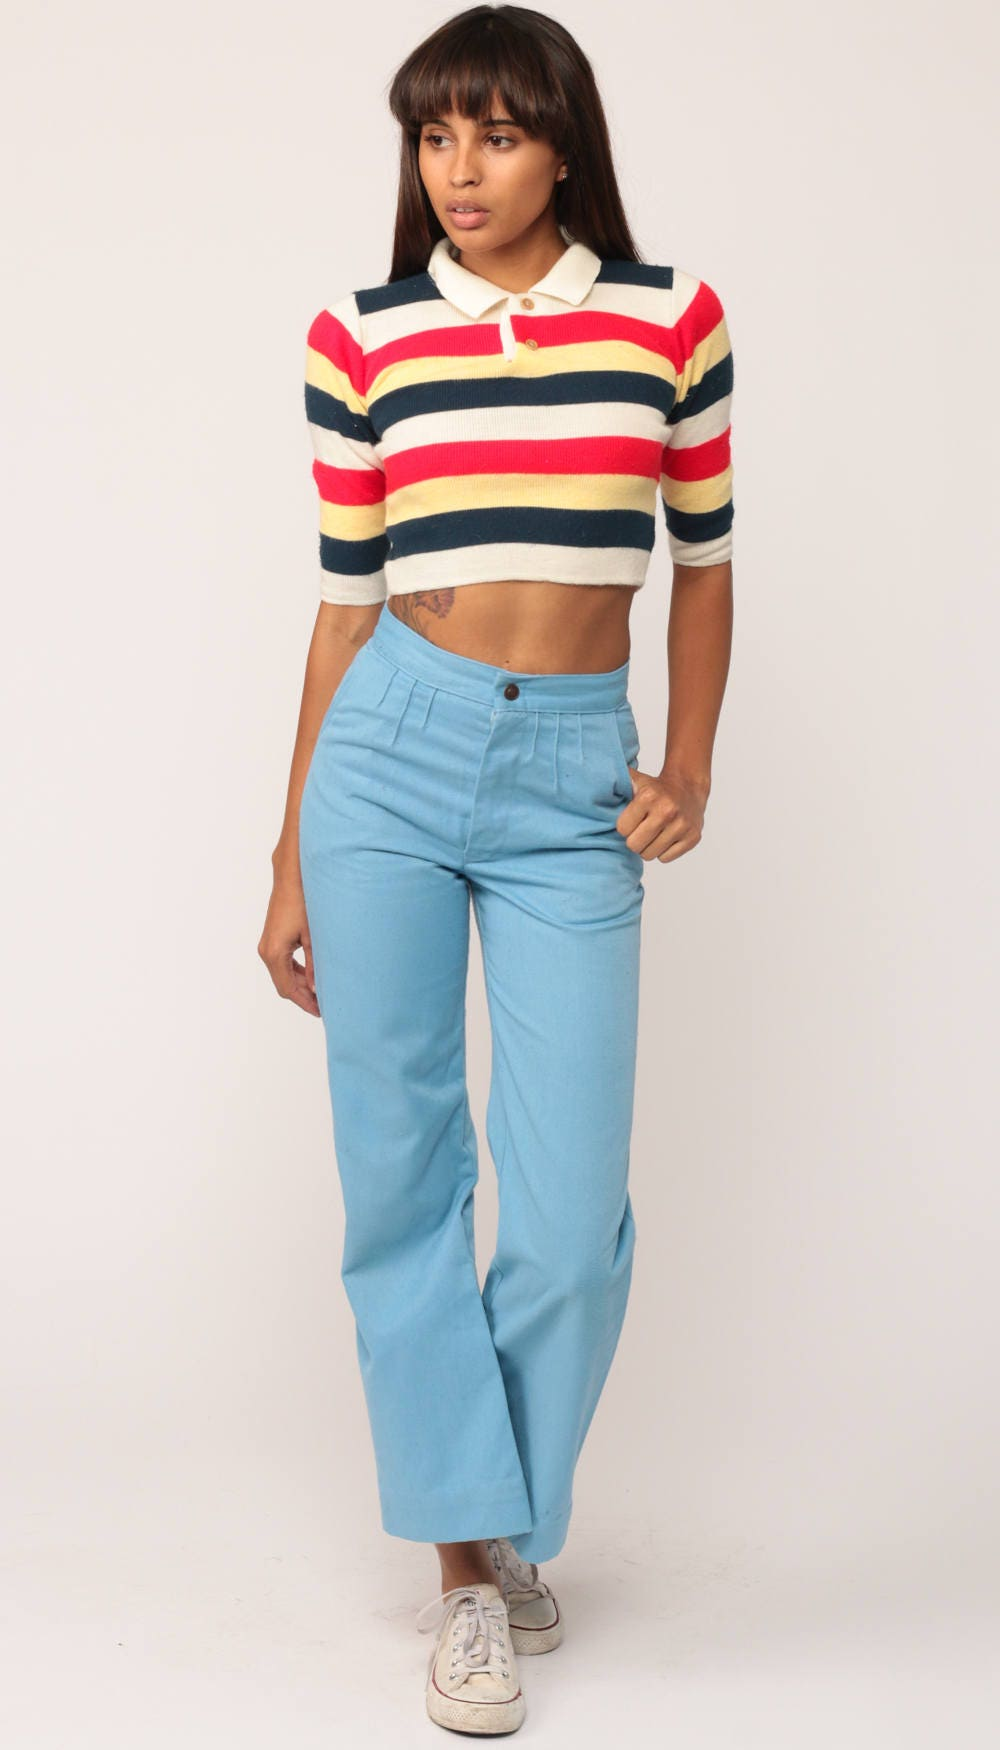 Crop top 80s shirt polo collared striped shirt knit top red for Cropped white collared shirt